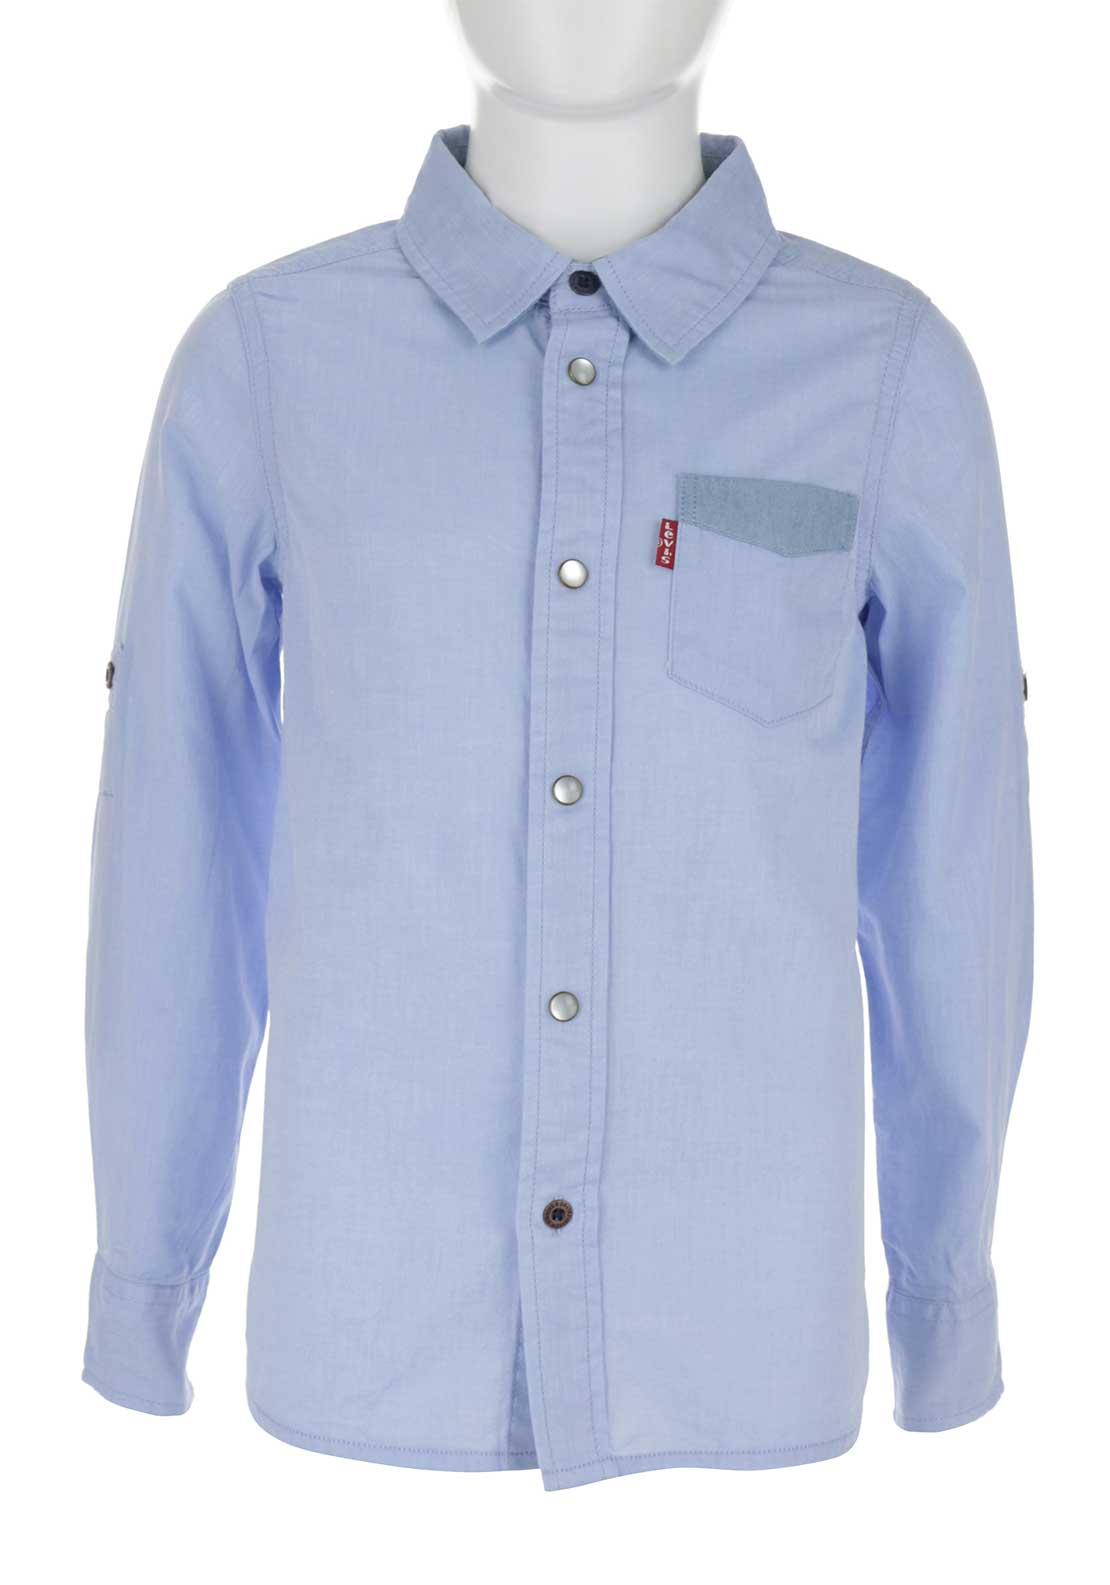 Levis Boys Cotton Shirt, Blue